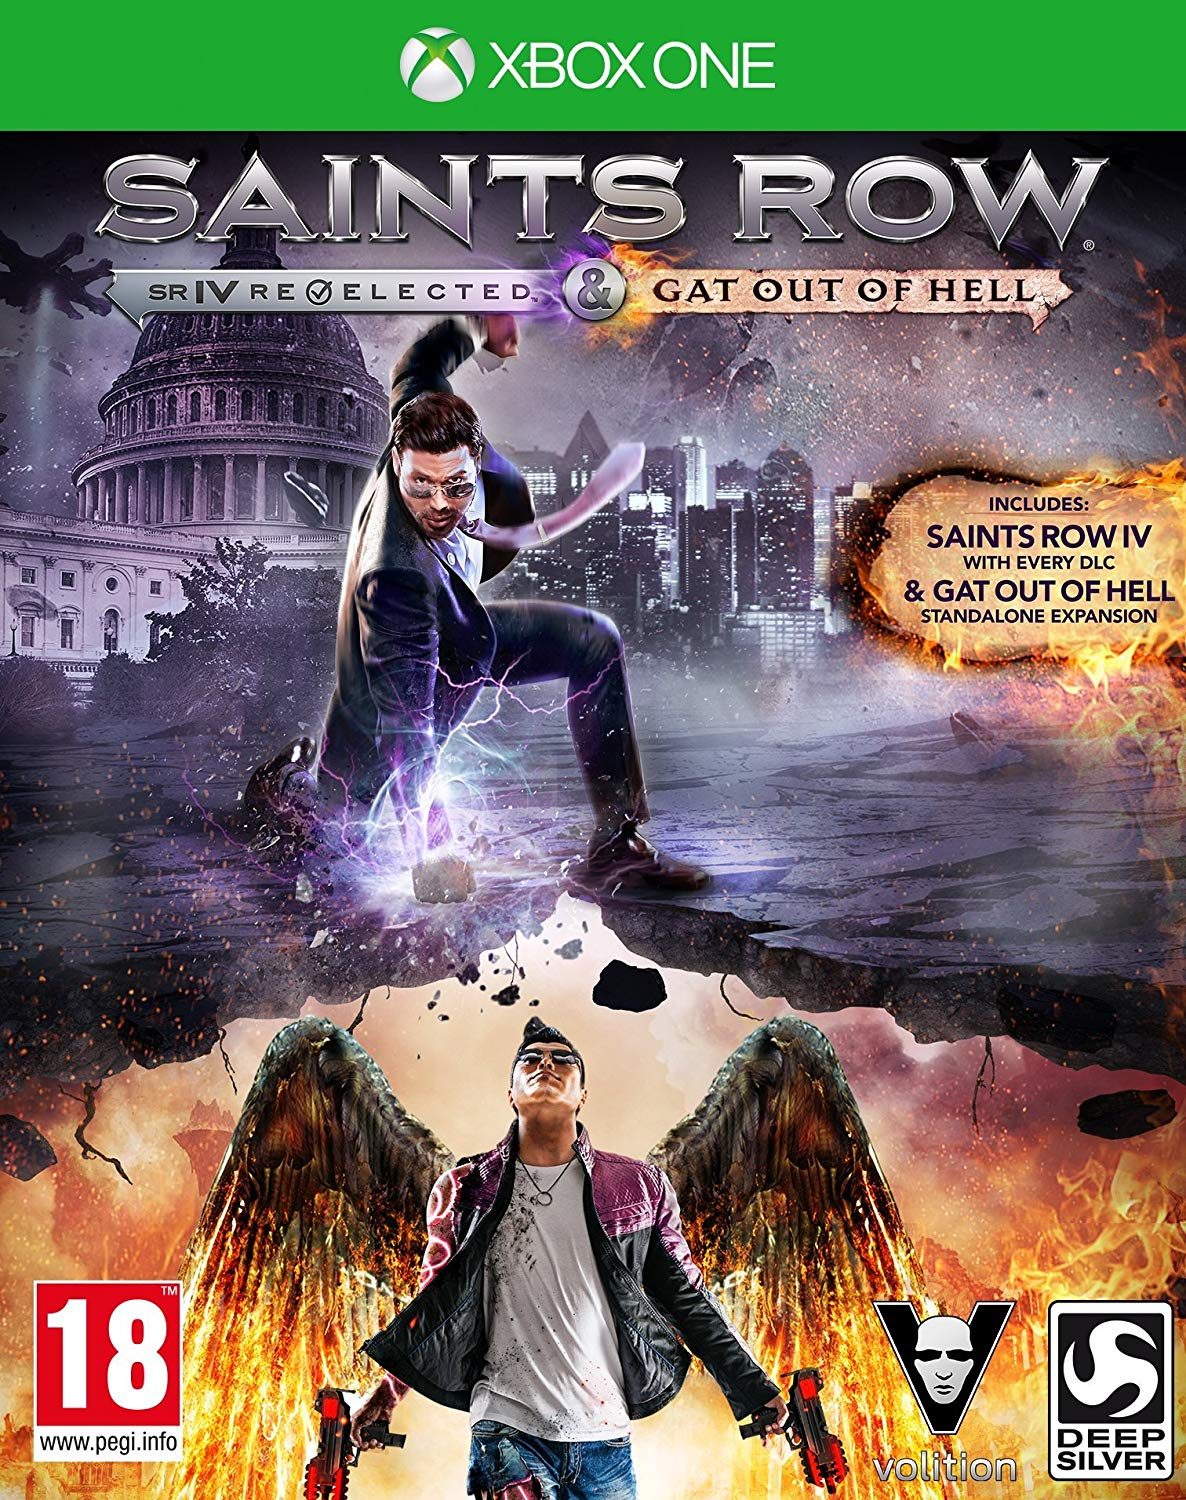 Saints Row IV Re Elected And Gat Out Of Hell